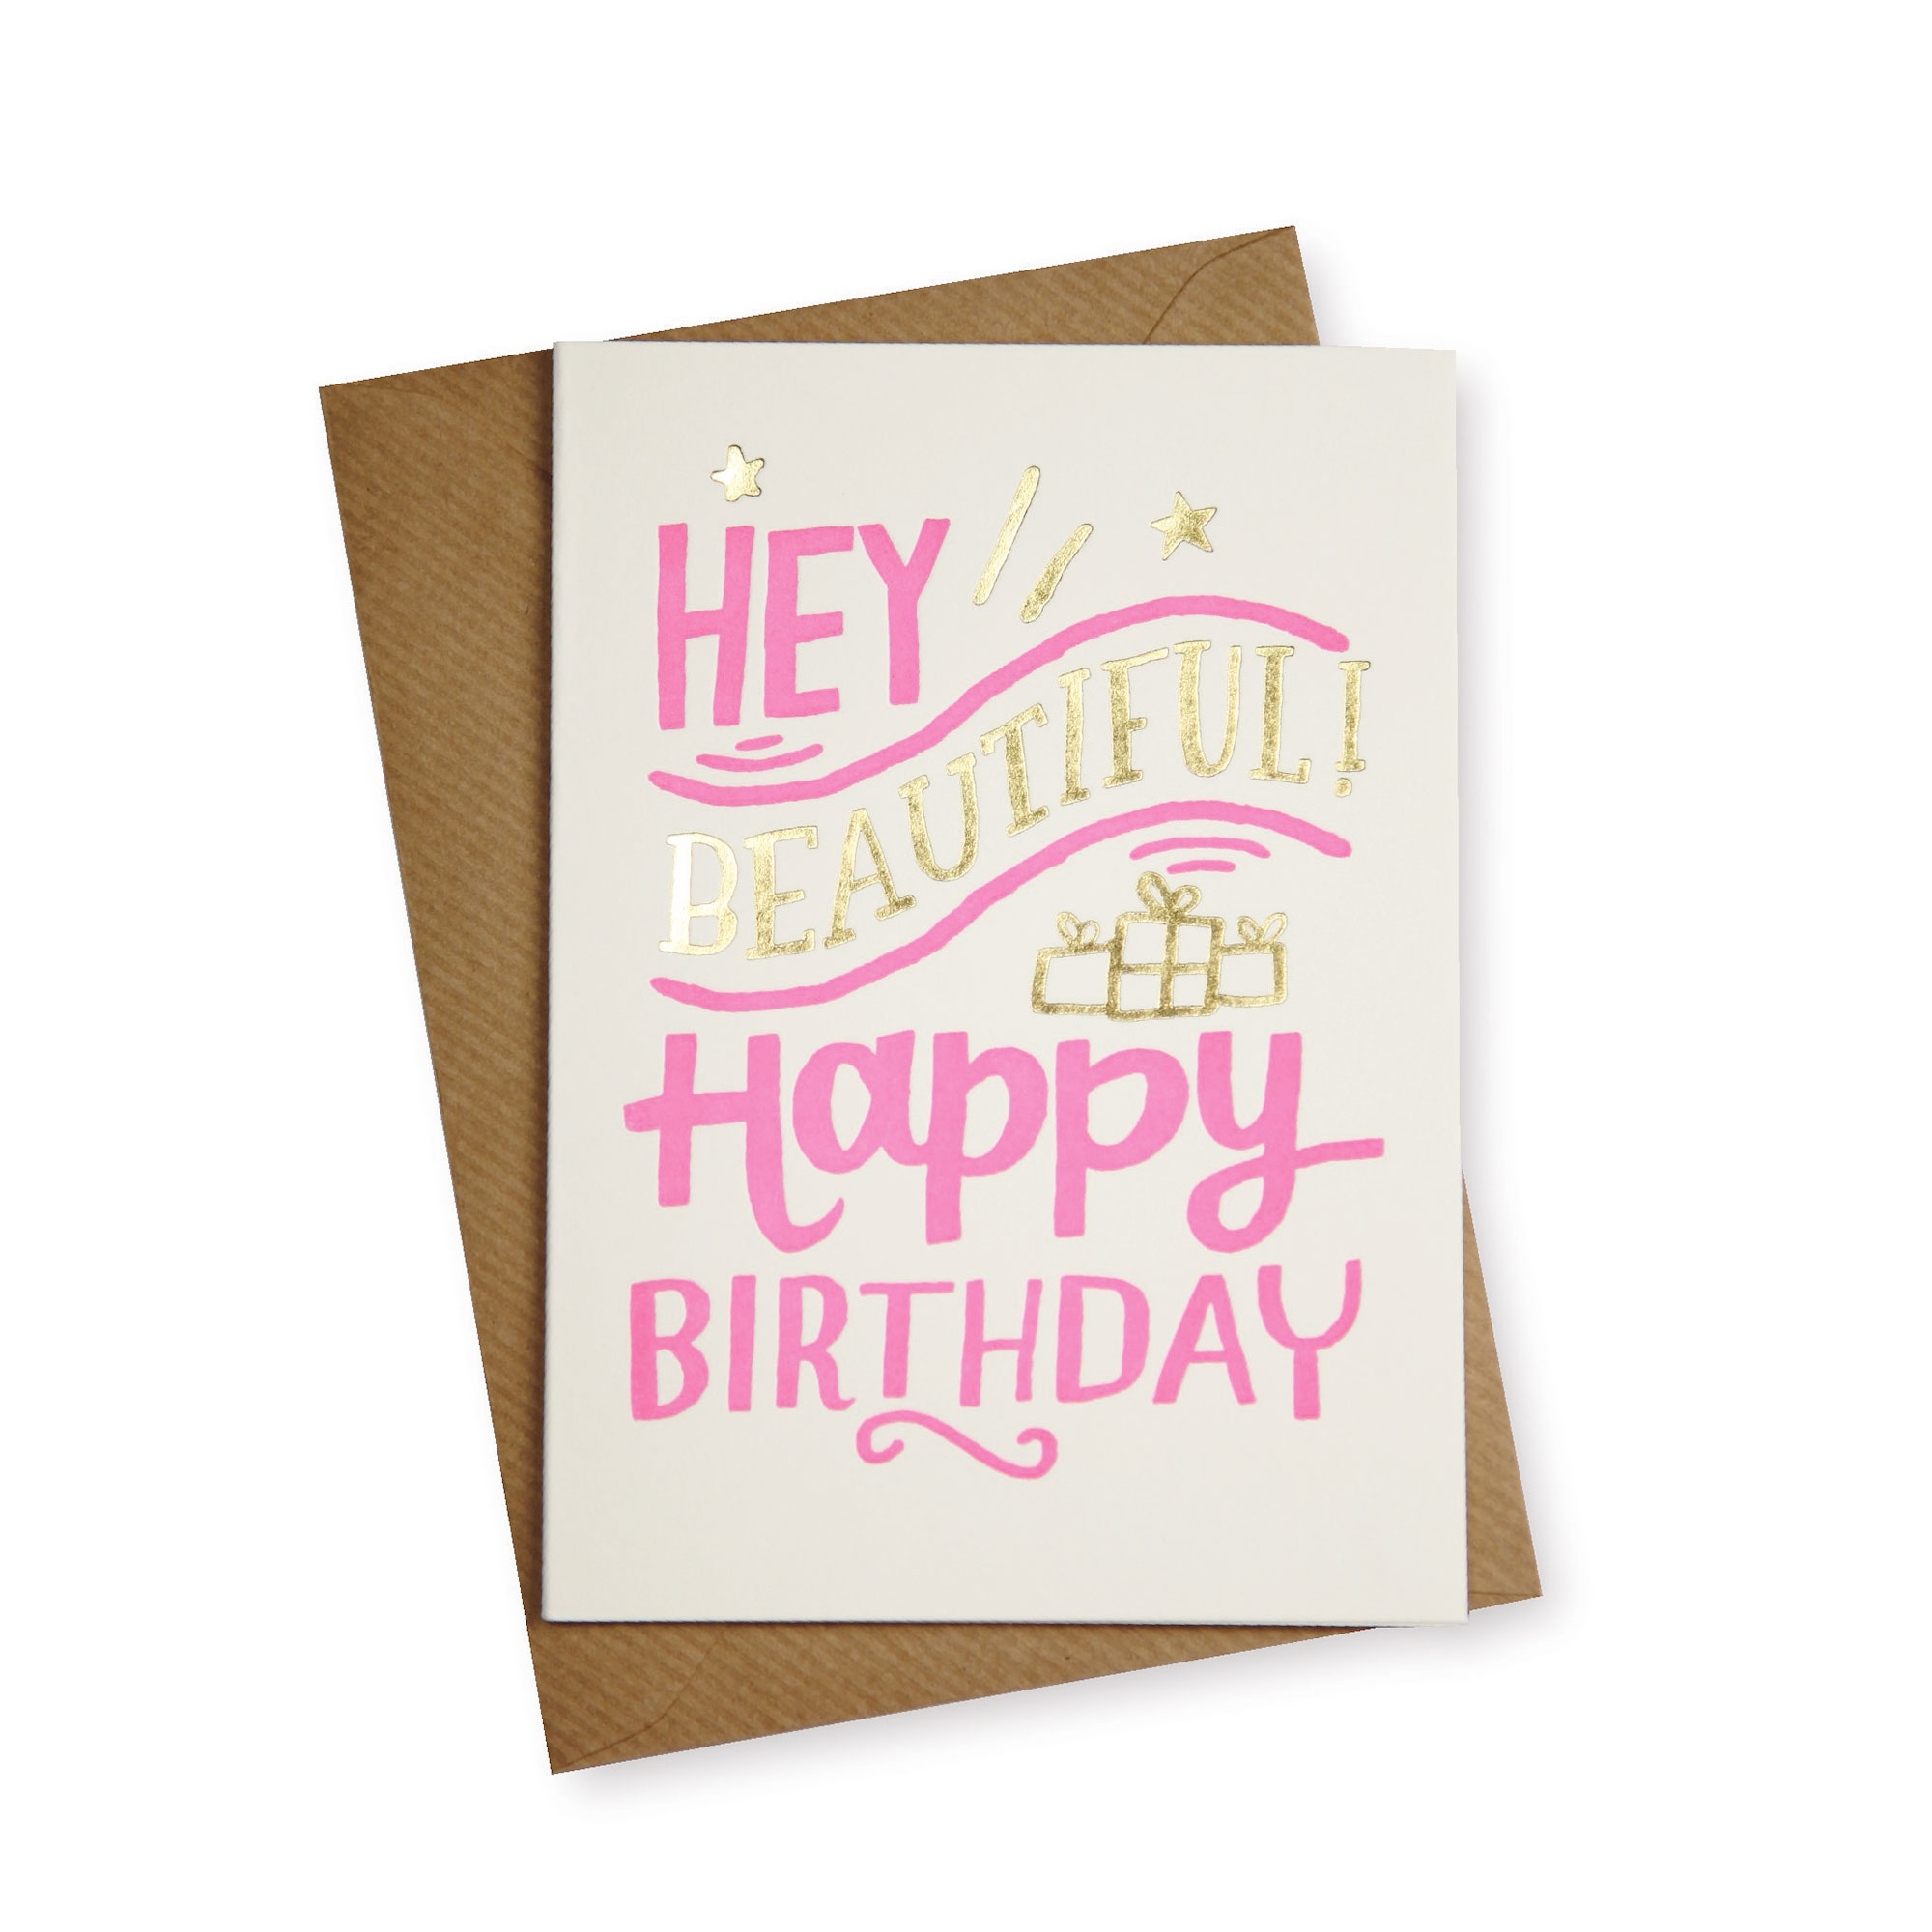 Hey Beautiful Happy Birthday Card